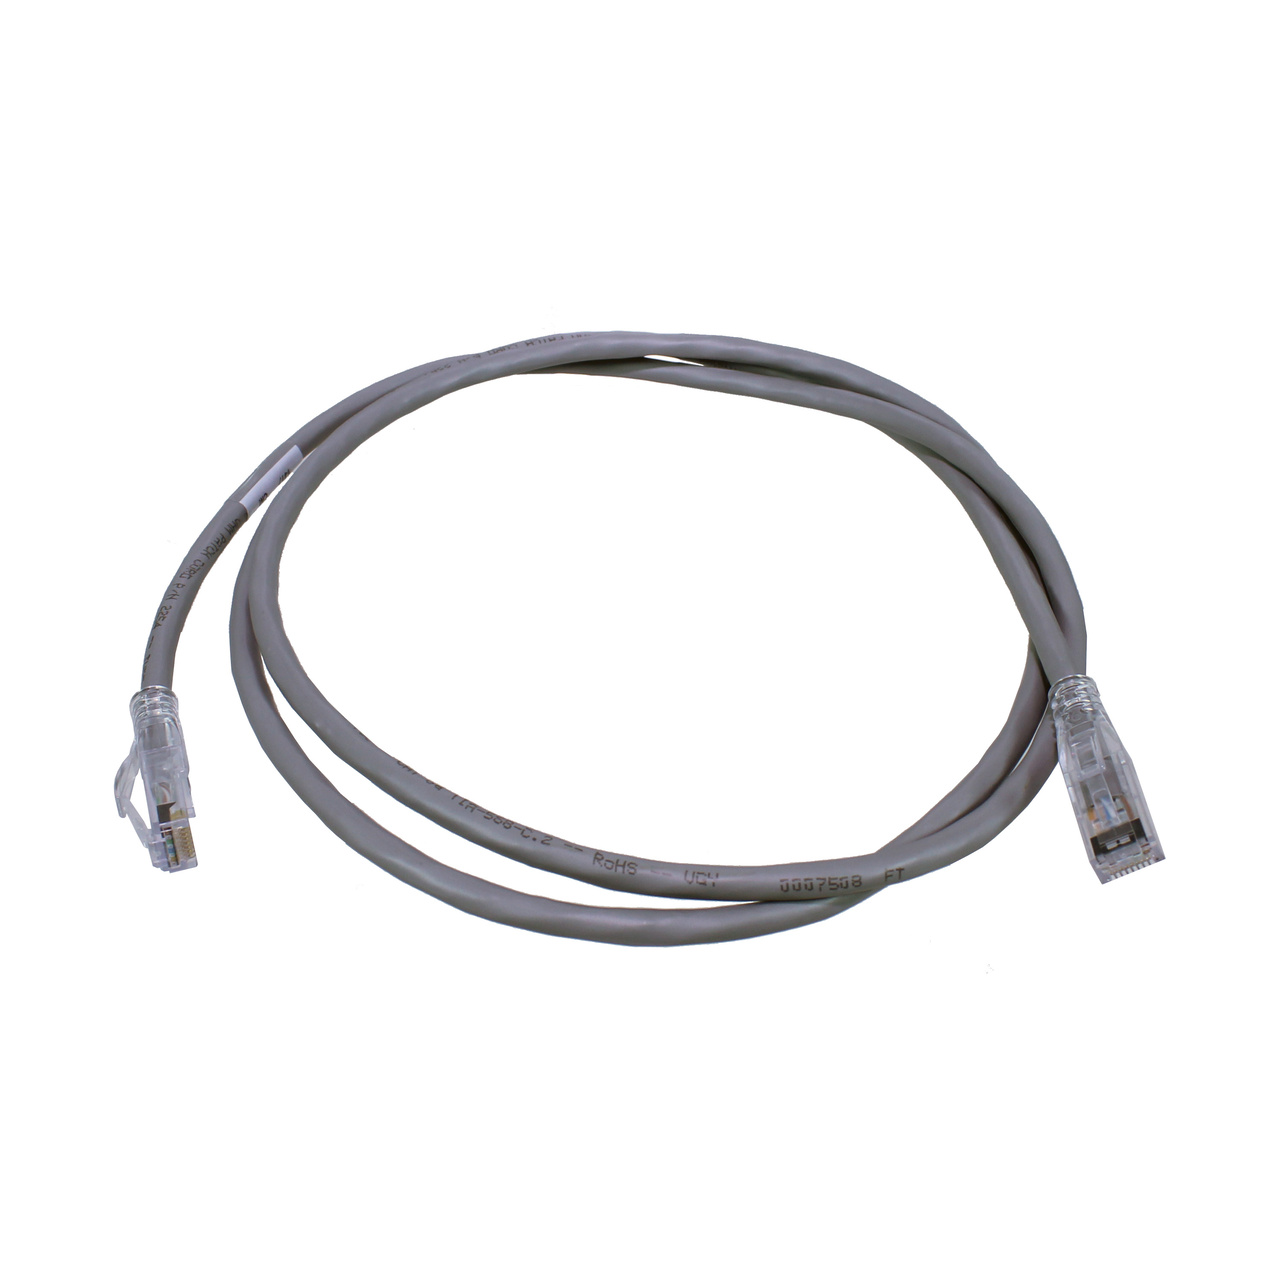 Ortronics Patch Cords